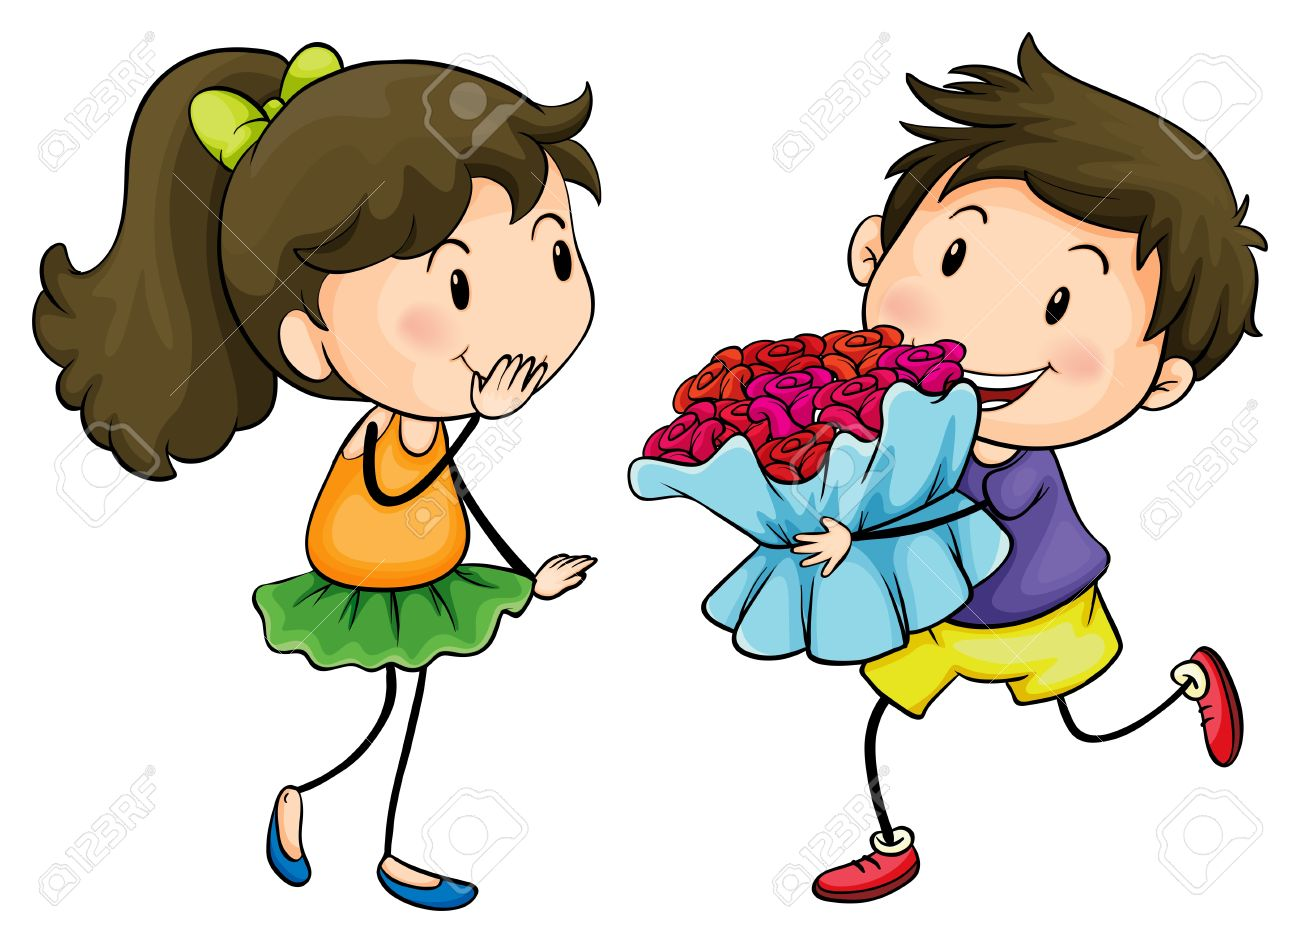 Illustration of a boy giving his girlfriend a bouquet of flowers on a white background Stock Vector - 17918436